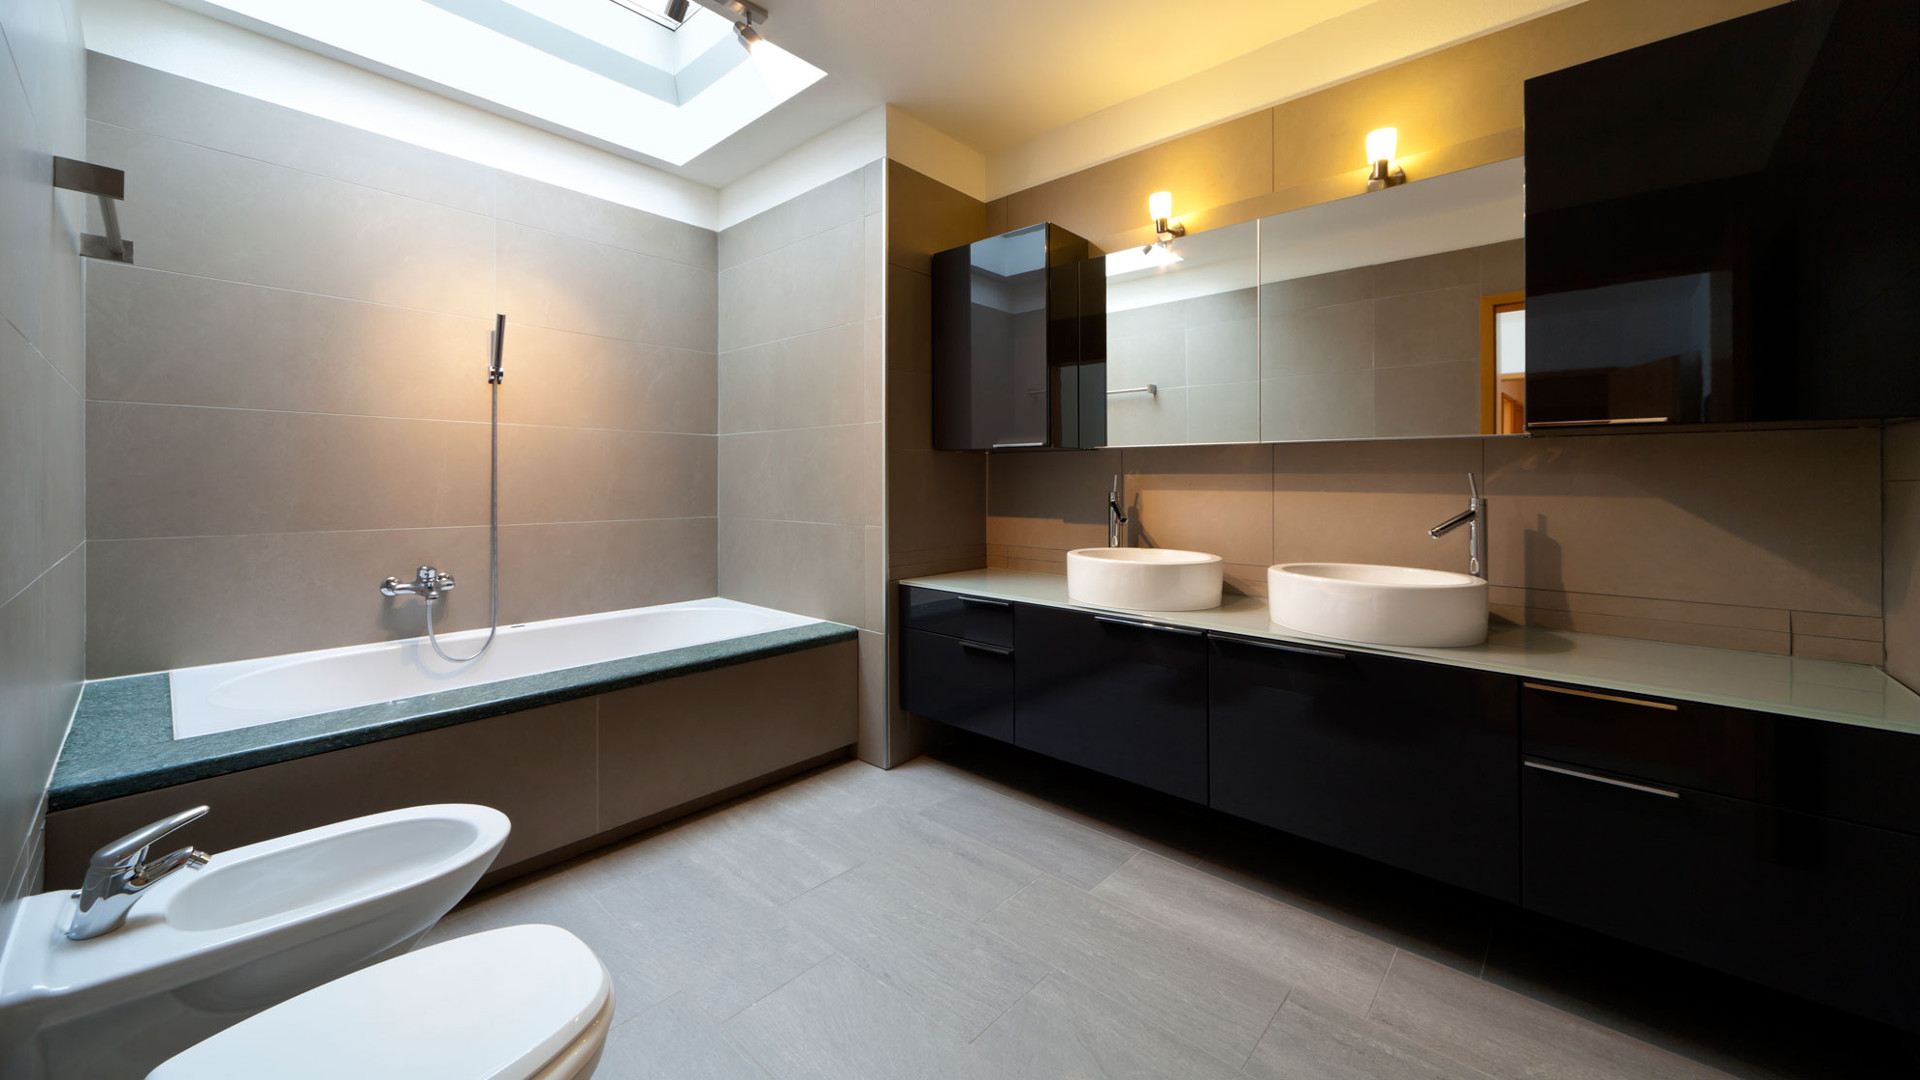 Bainbridge Island Bathroom Remodeling